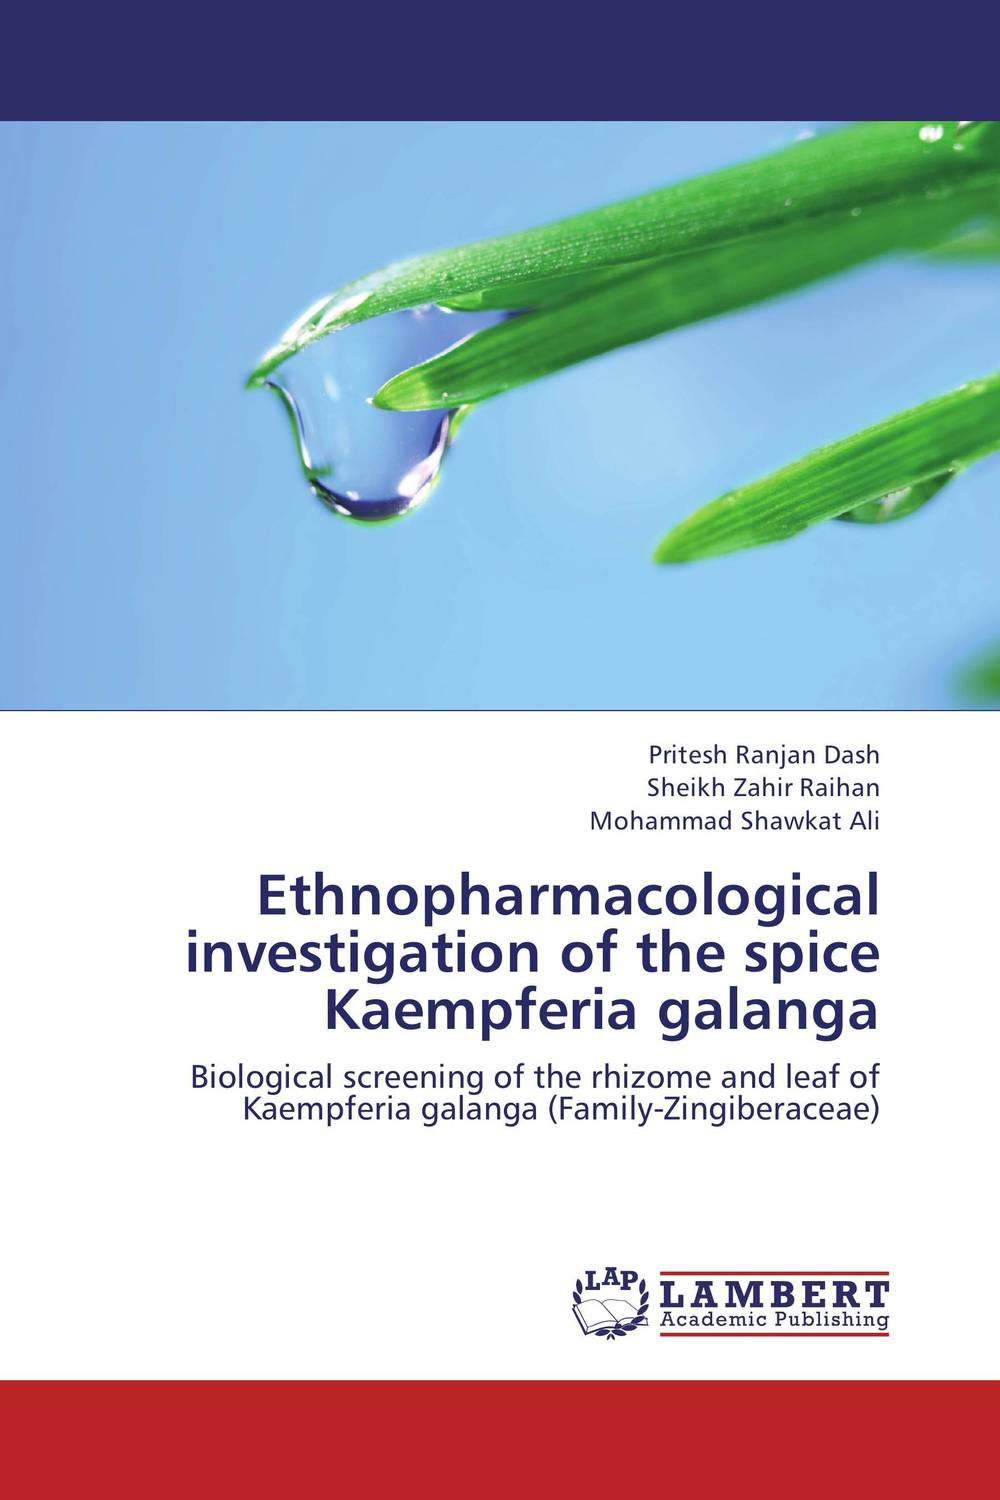 Ethnopharmacological investigation of the spice Kaempferia galanga ethnopharmacological investigation of the spice grewia paniculata